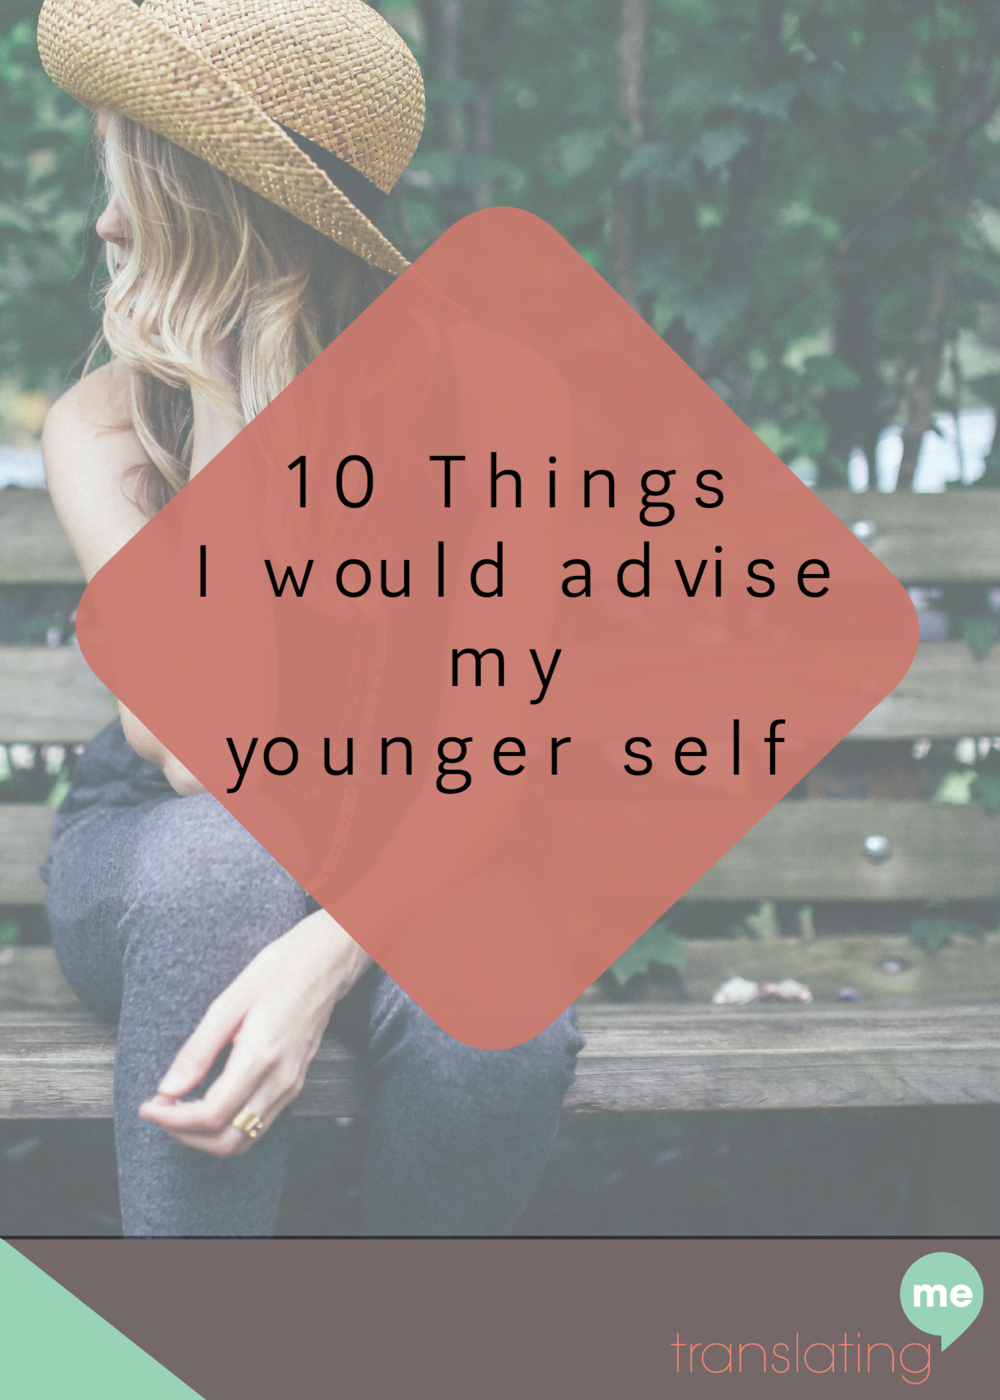 Advice for younger me